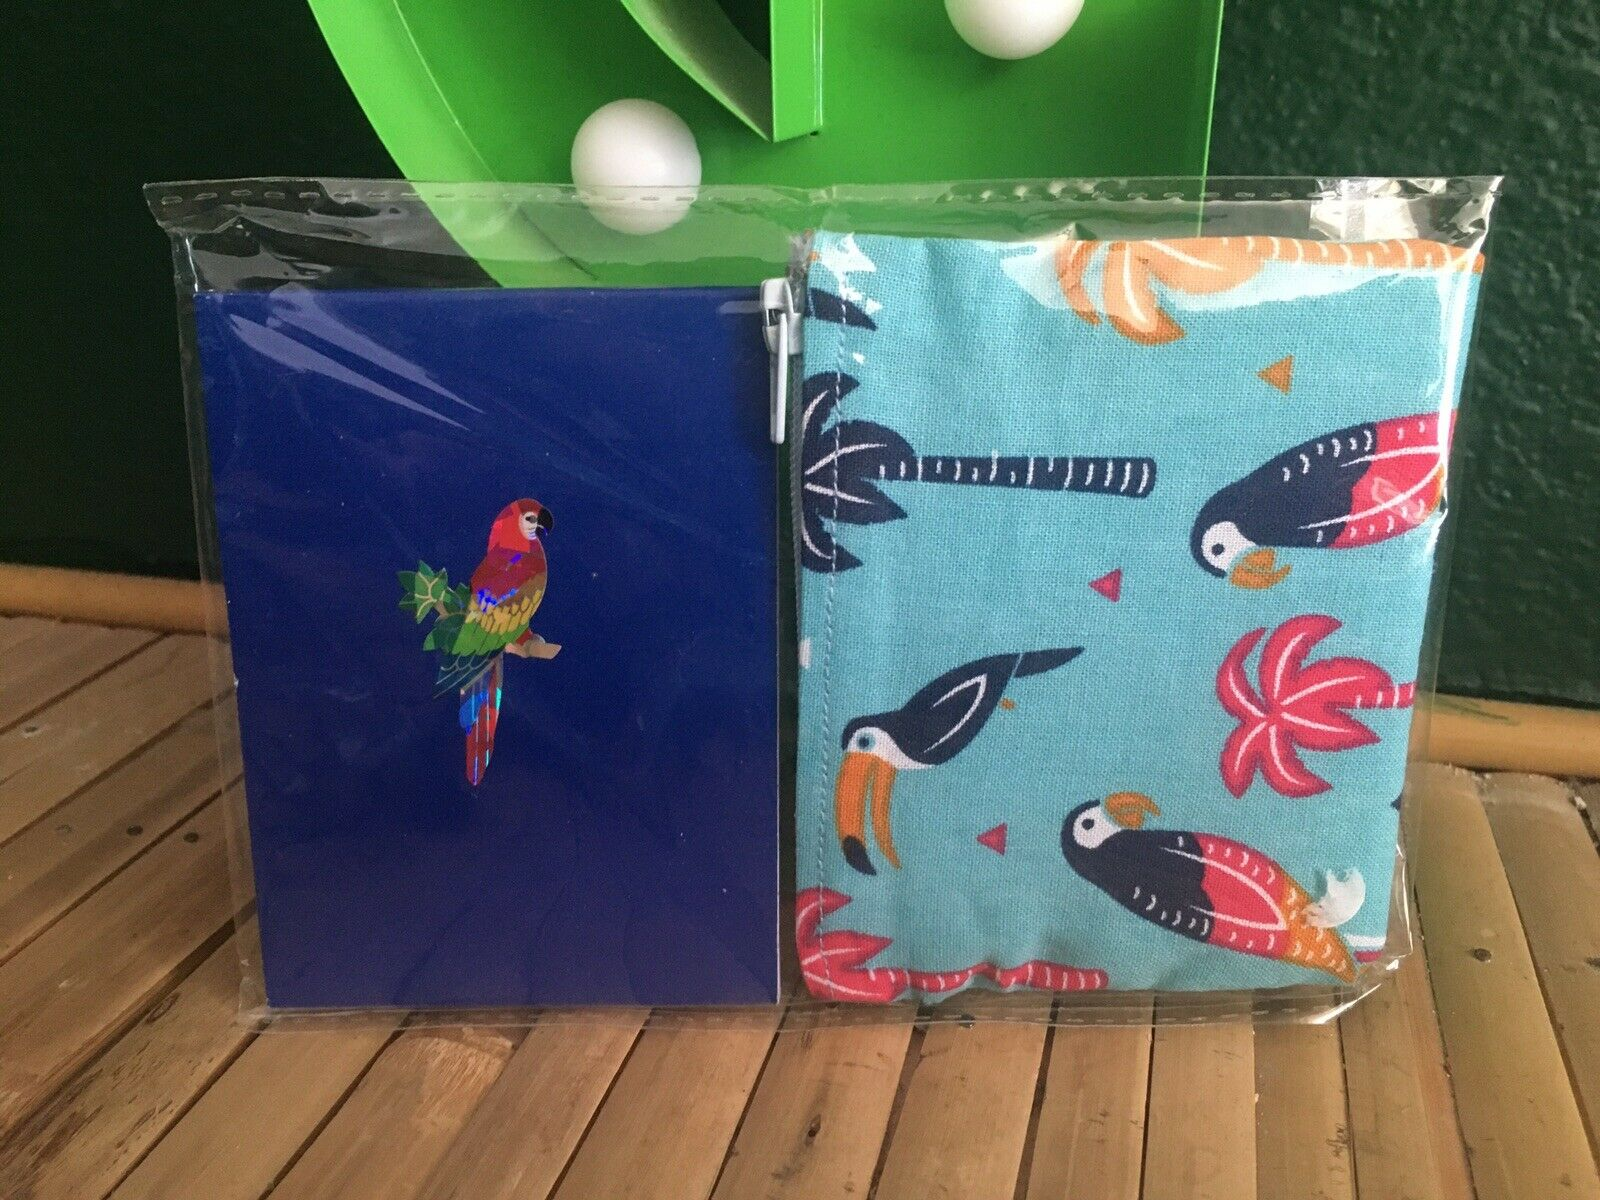 Tropical Toucan Parrot Palm Tree Coin Purse +Blue Notebook 2 Piece Gift Set